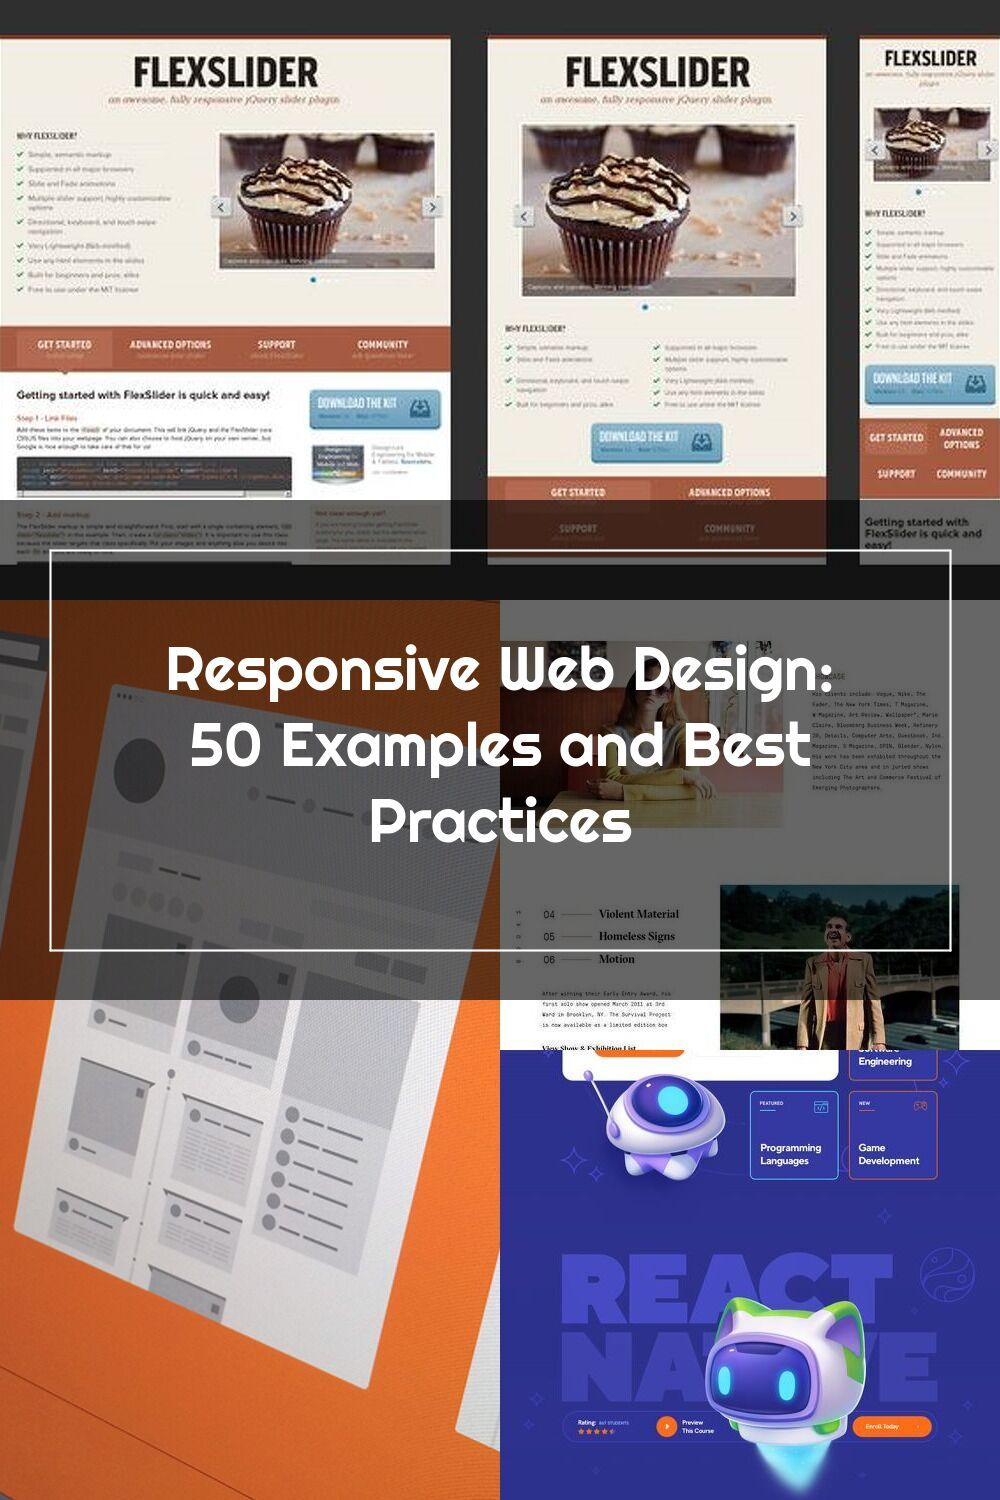 Responsive Web Design 50 Examples And Best Practices In 2020 Responsive Web Design Web Design Design